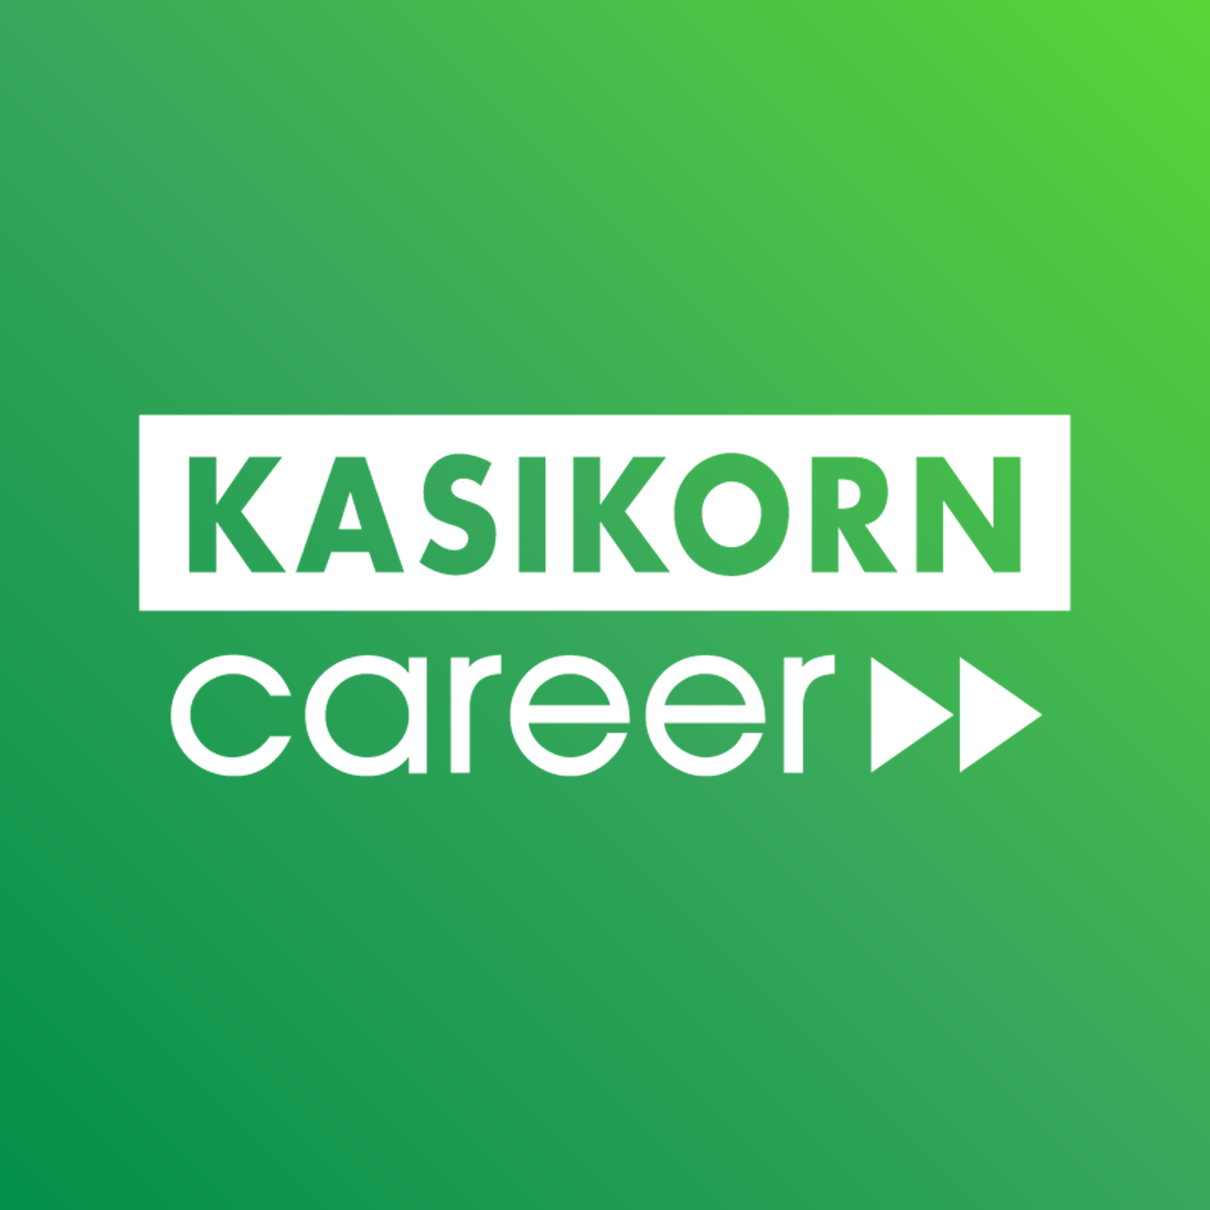 KASIKORN CAREER